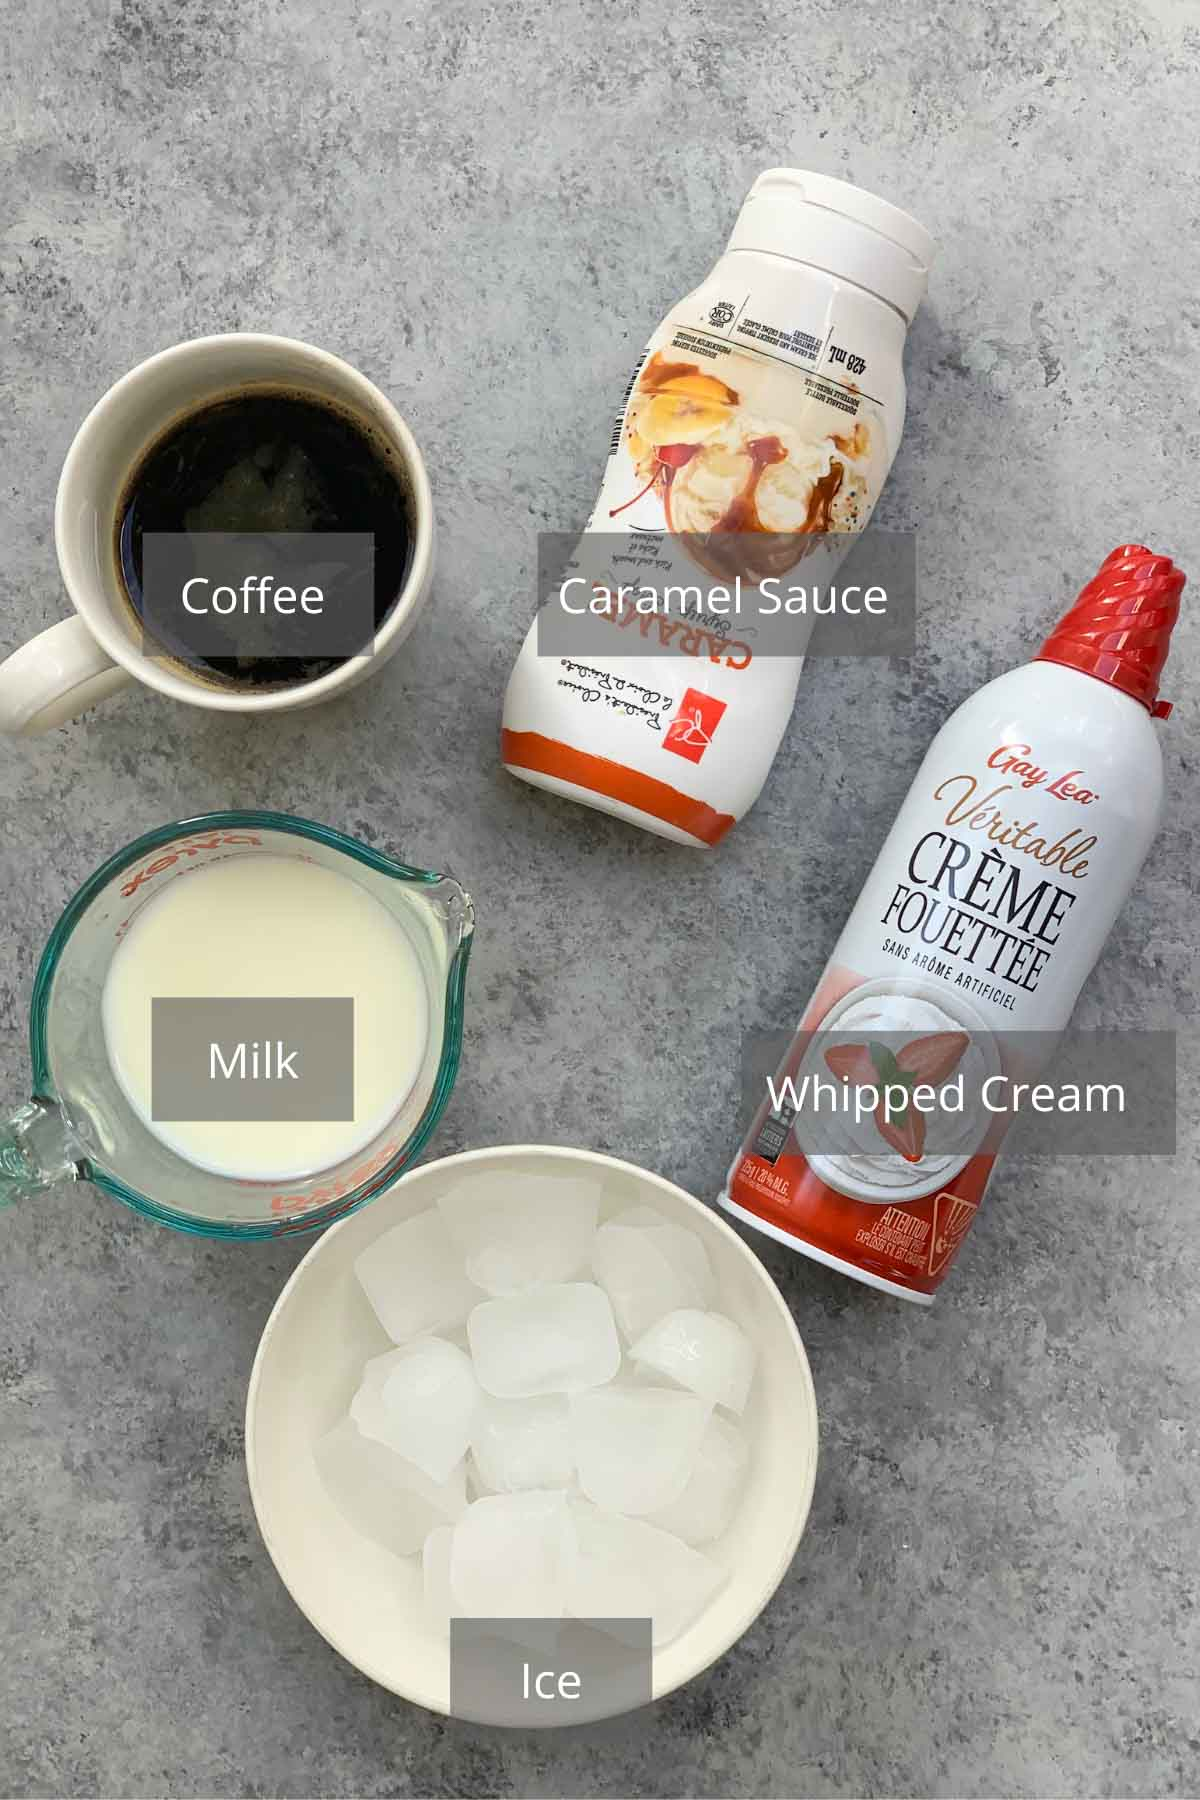 Caramel Frappuccino ingredients on the counter.